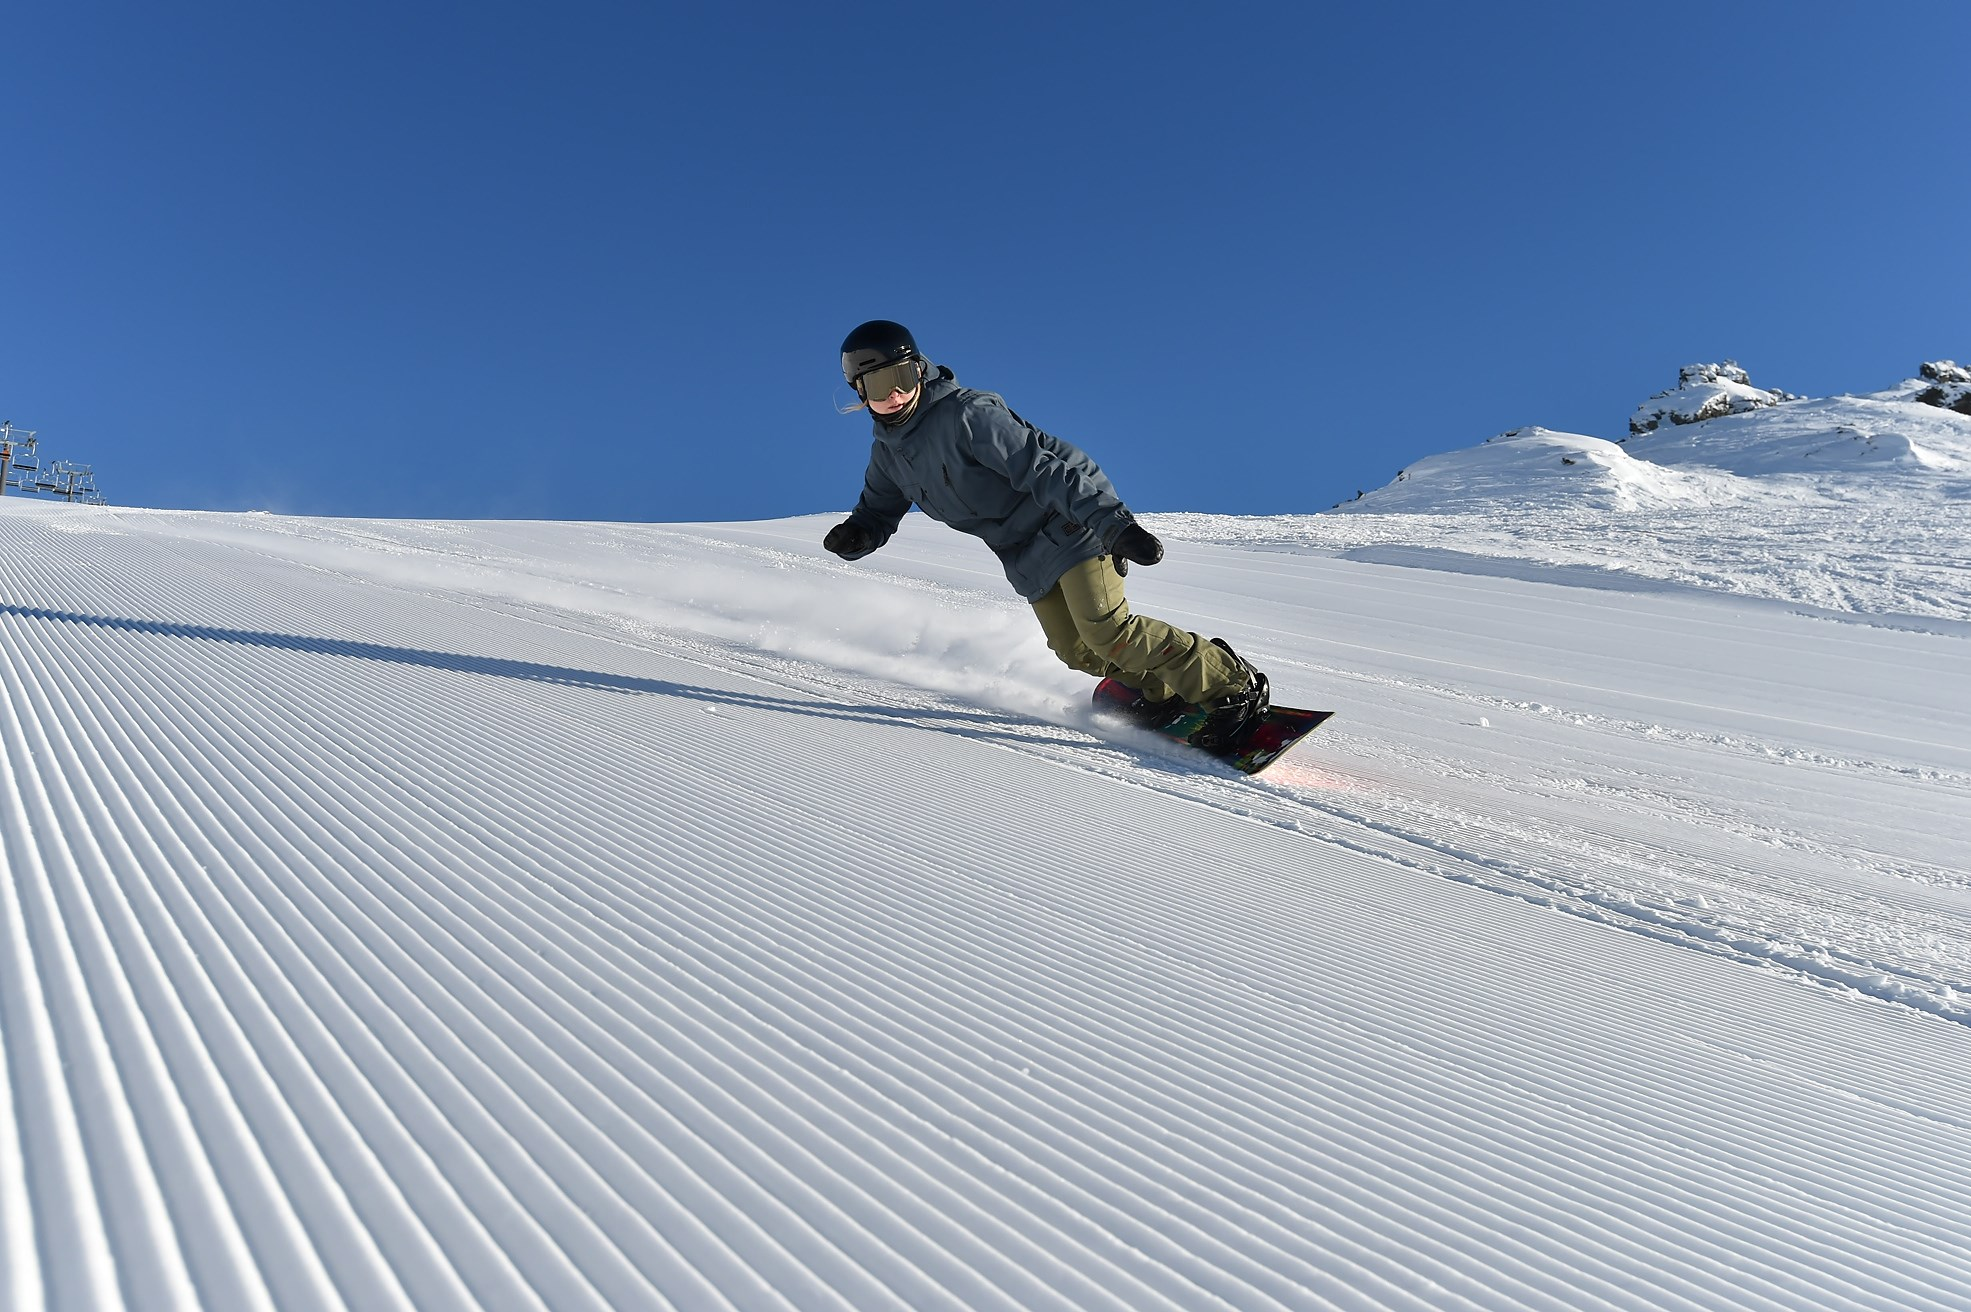 skiing amp snowboarding in new zealand cardrona nz